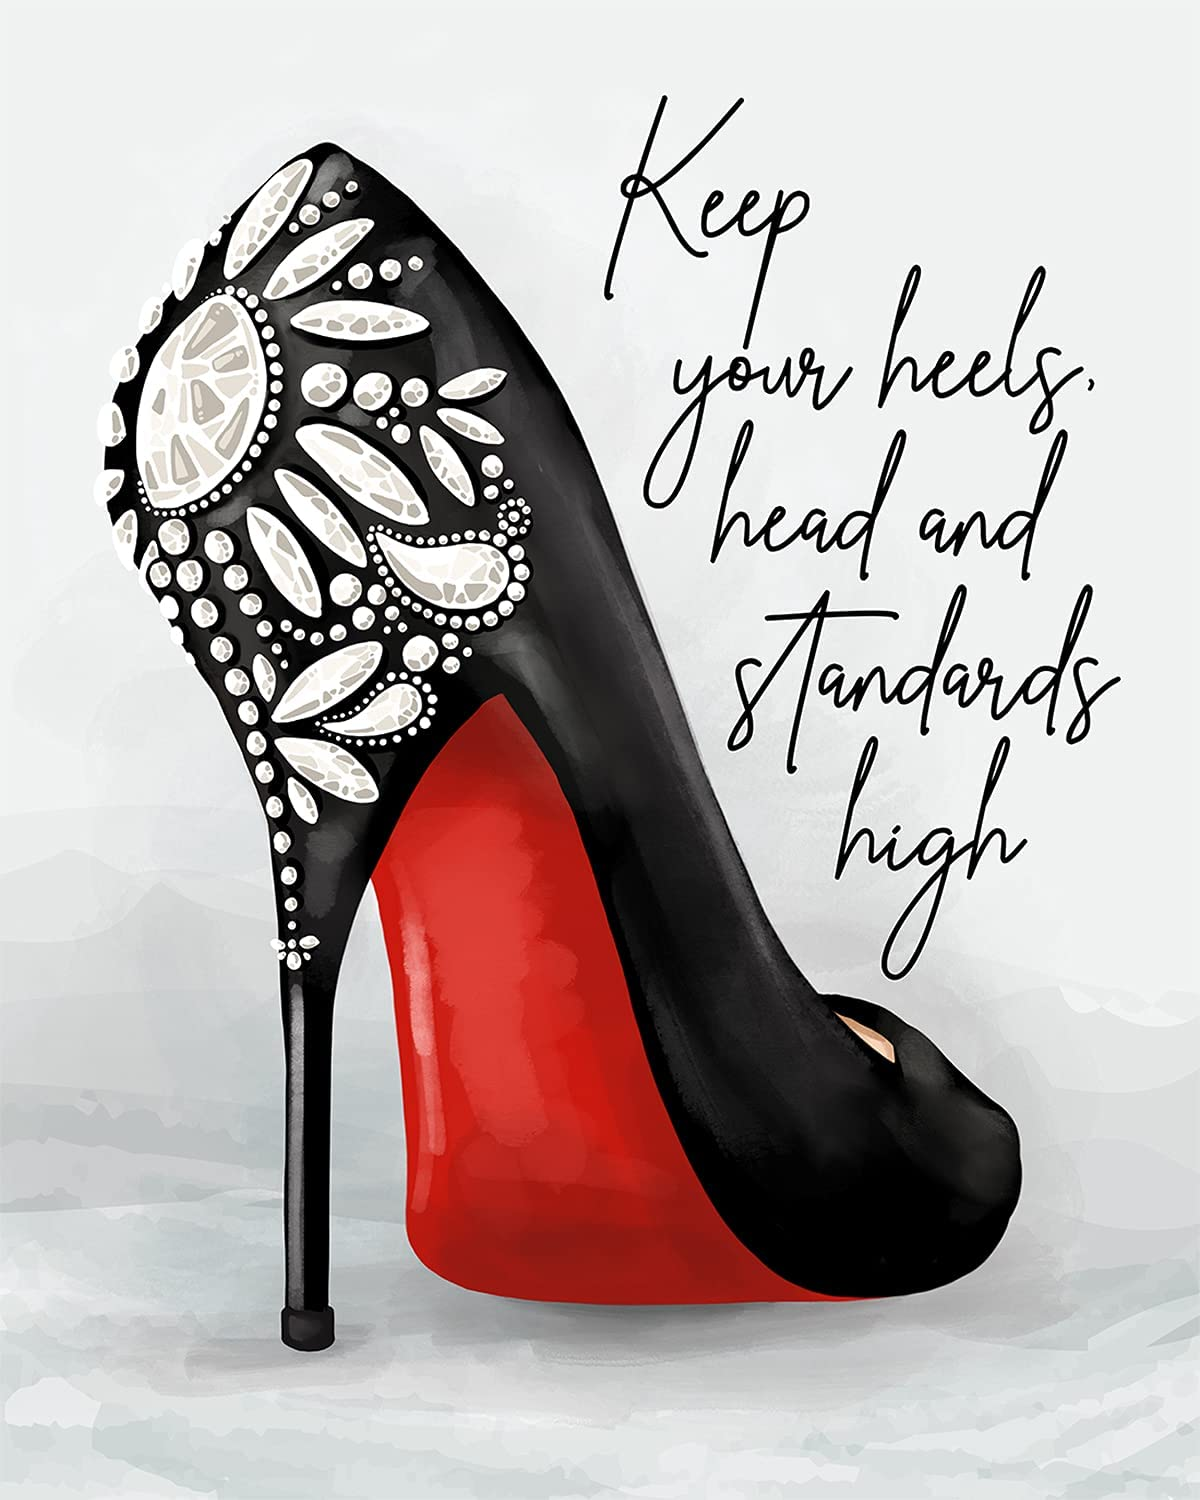 Keep Your Heels, Head And Standards High - Hand-Drawn Wall Decor Art Print with a gray background - 8x10 unframed artwork printed on photograph paper